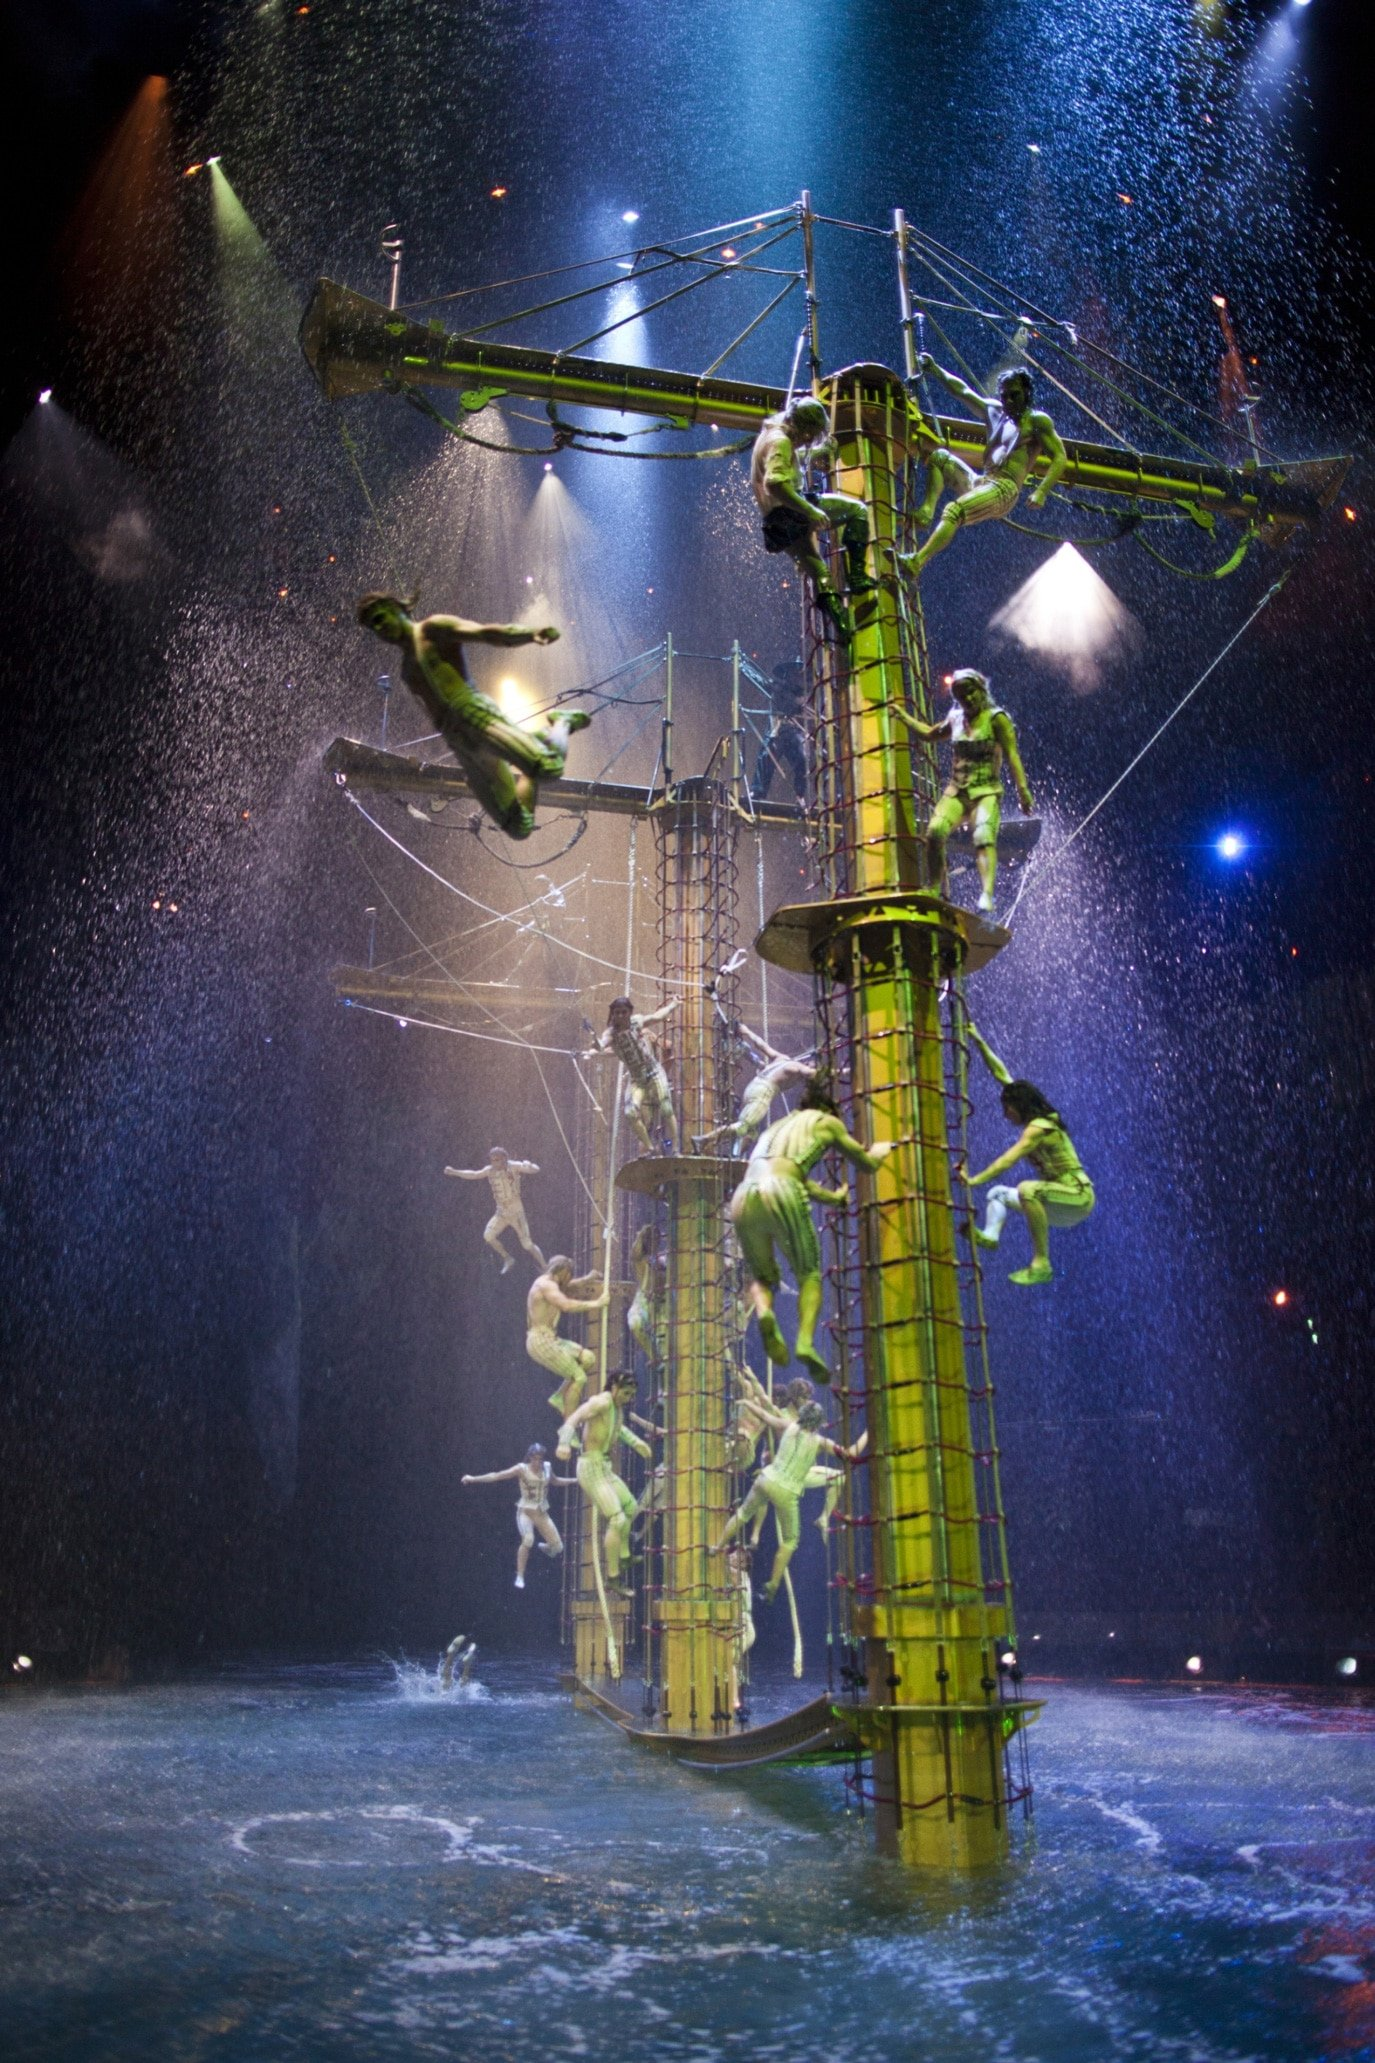 Acrobats climb up a shipwrecked ship  surrounded by water on stage.